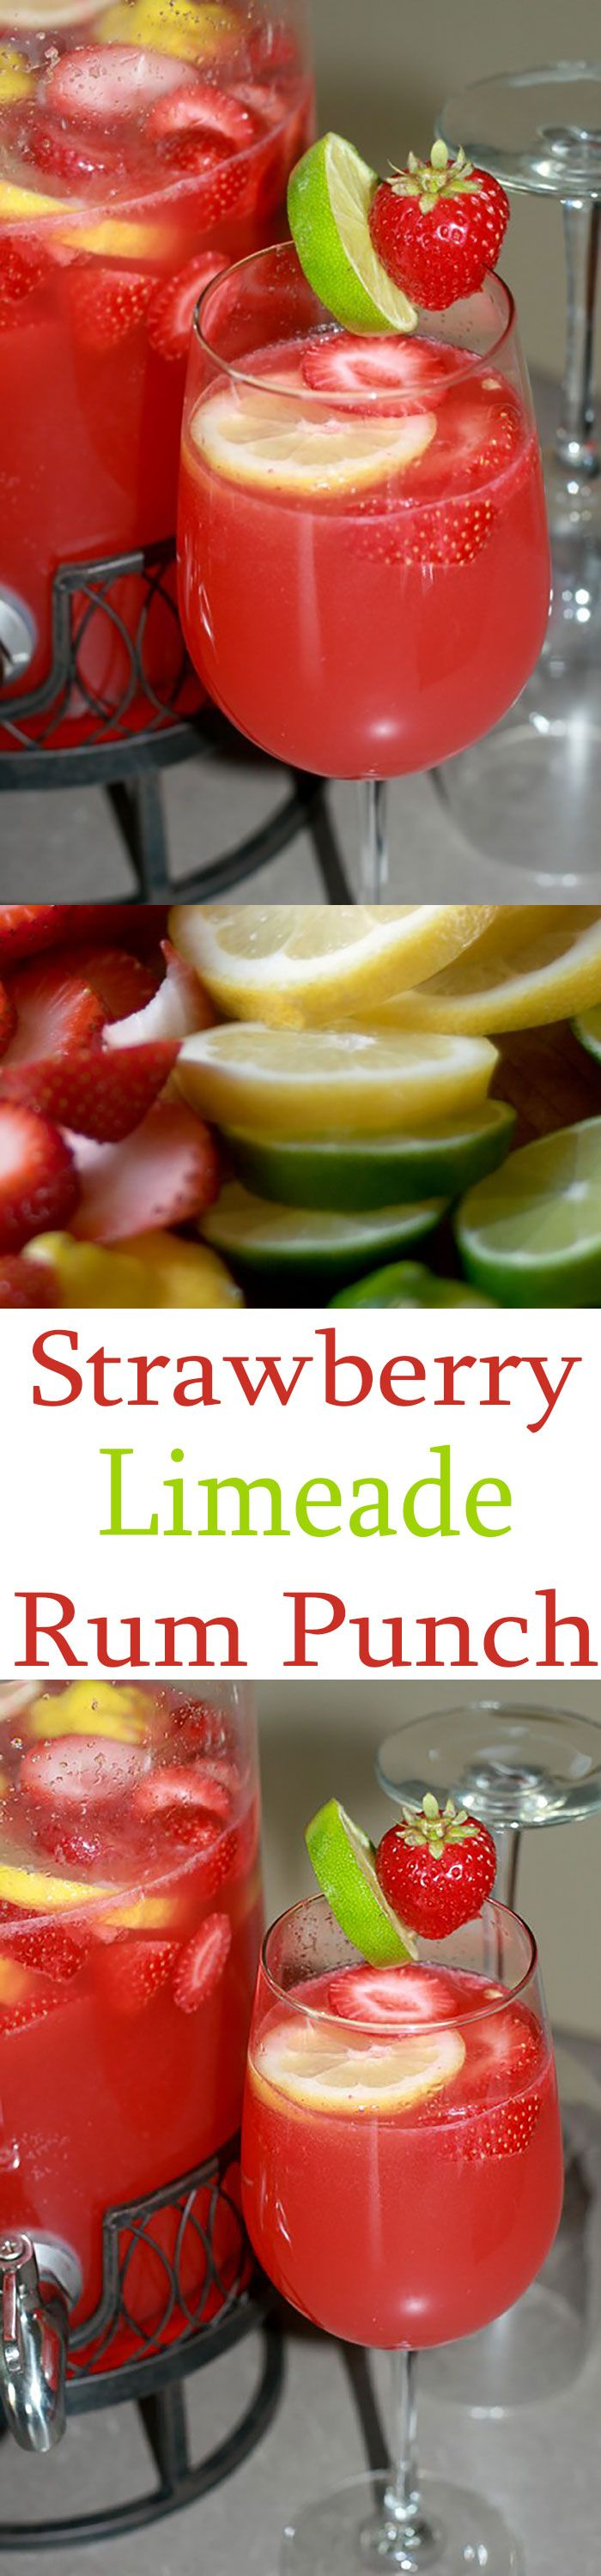 Strawberry Limeade Rum Punch is the ultimate party punch. Your friends will be raving about it and asking you for the recipe.   www.AllSheCooks.com   #partypunch